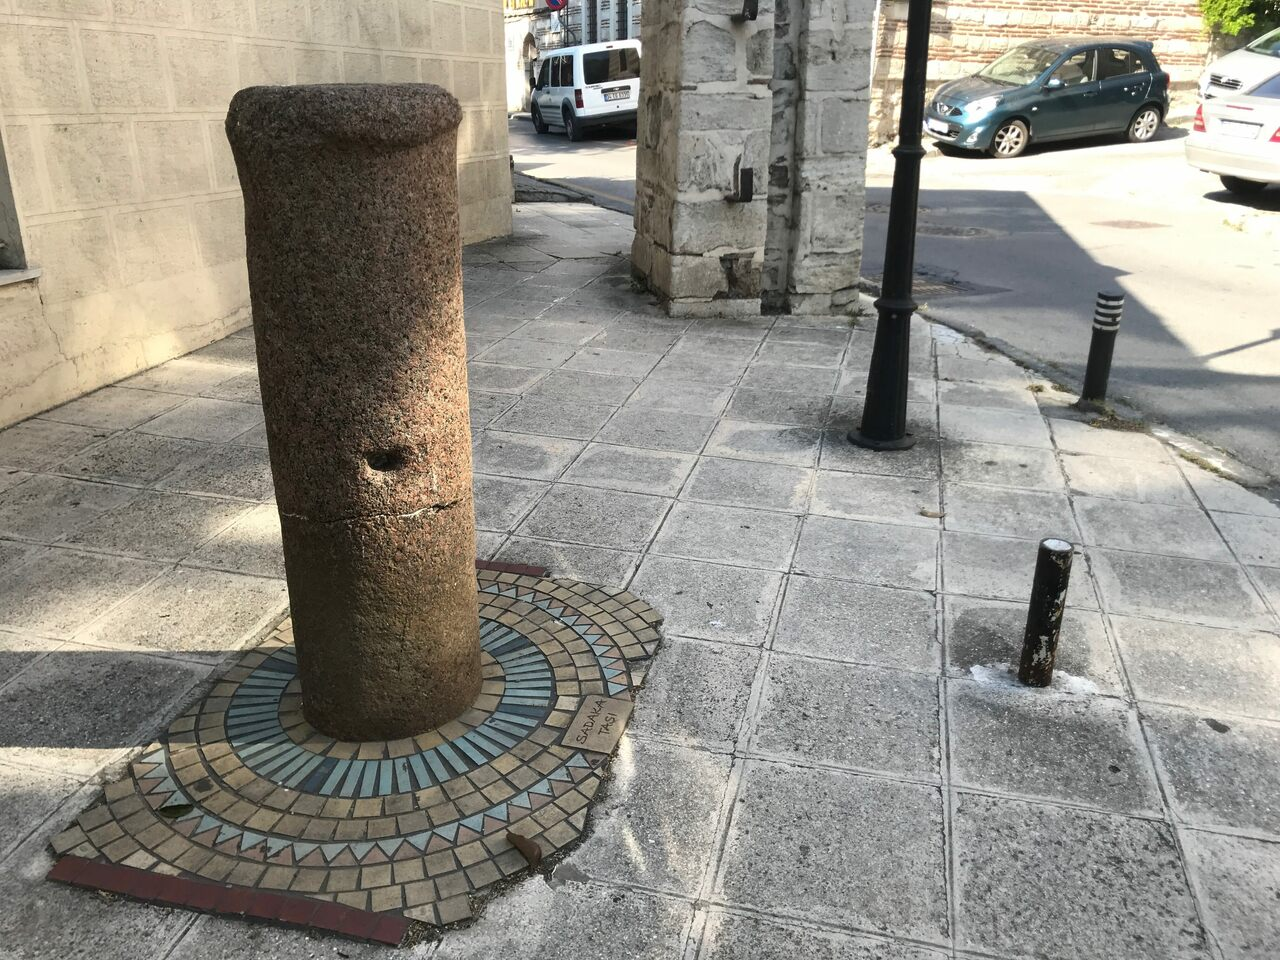 One of the best preserved charity stones in Istanbul, outside the İmrahor Mosque in the Üsküdar district.